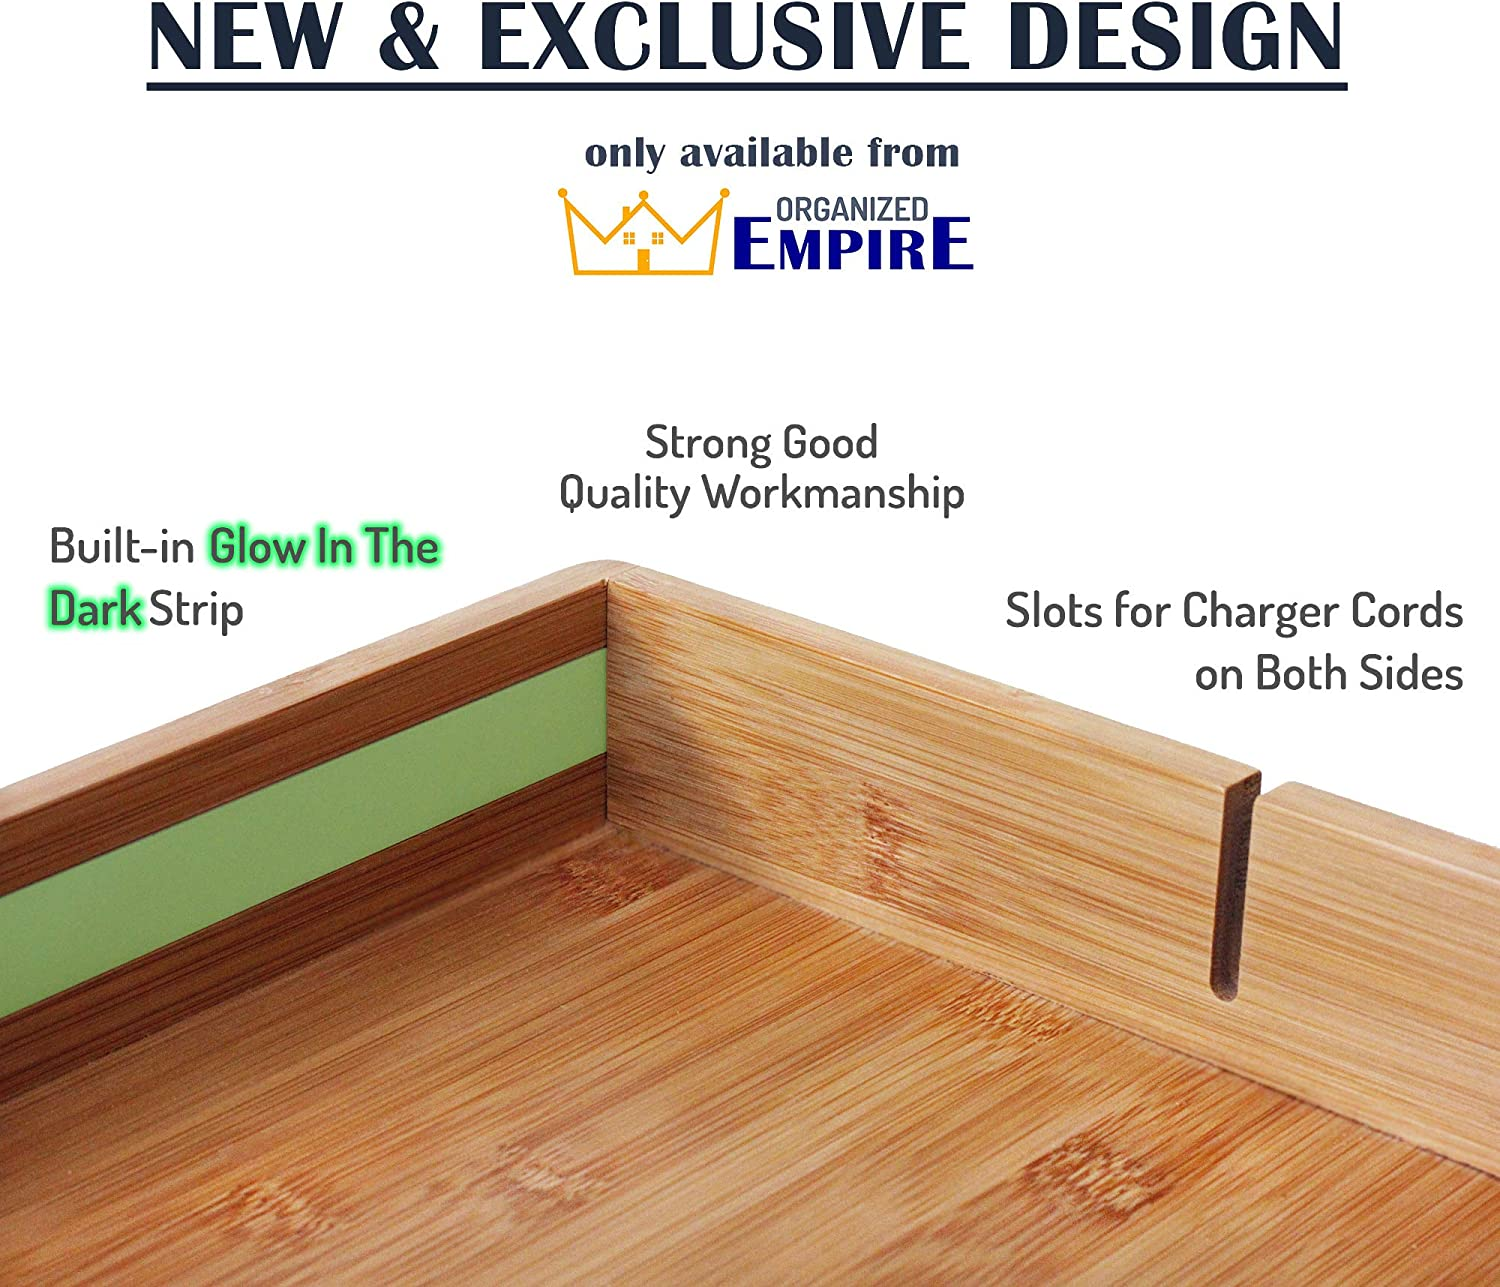 Buy Bunk Bed Shelf For Top Bunk With Glow In The Dark Wayfinding Strip Easy To Install Kids Bed Shelf Attachment Bunk Buddy Bedside Shelf Organizer Or Bunk Bed Tray Table